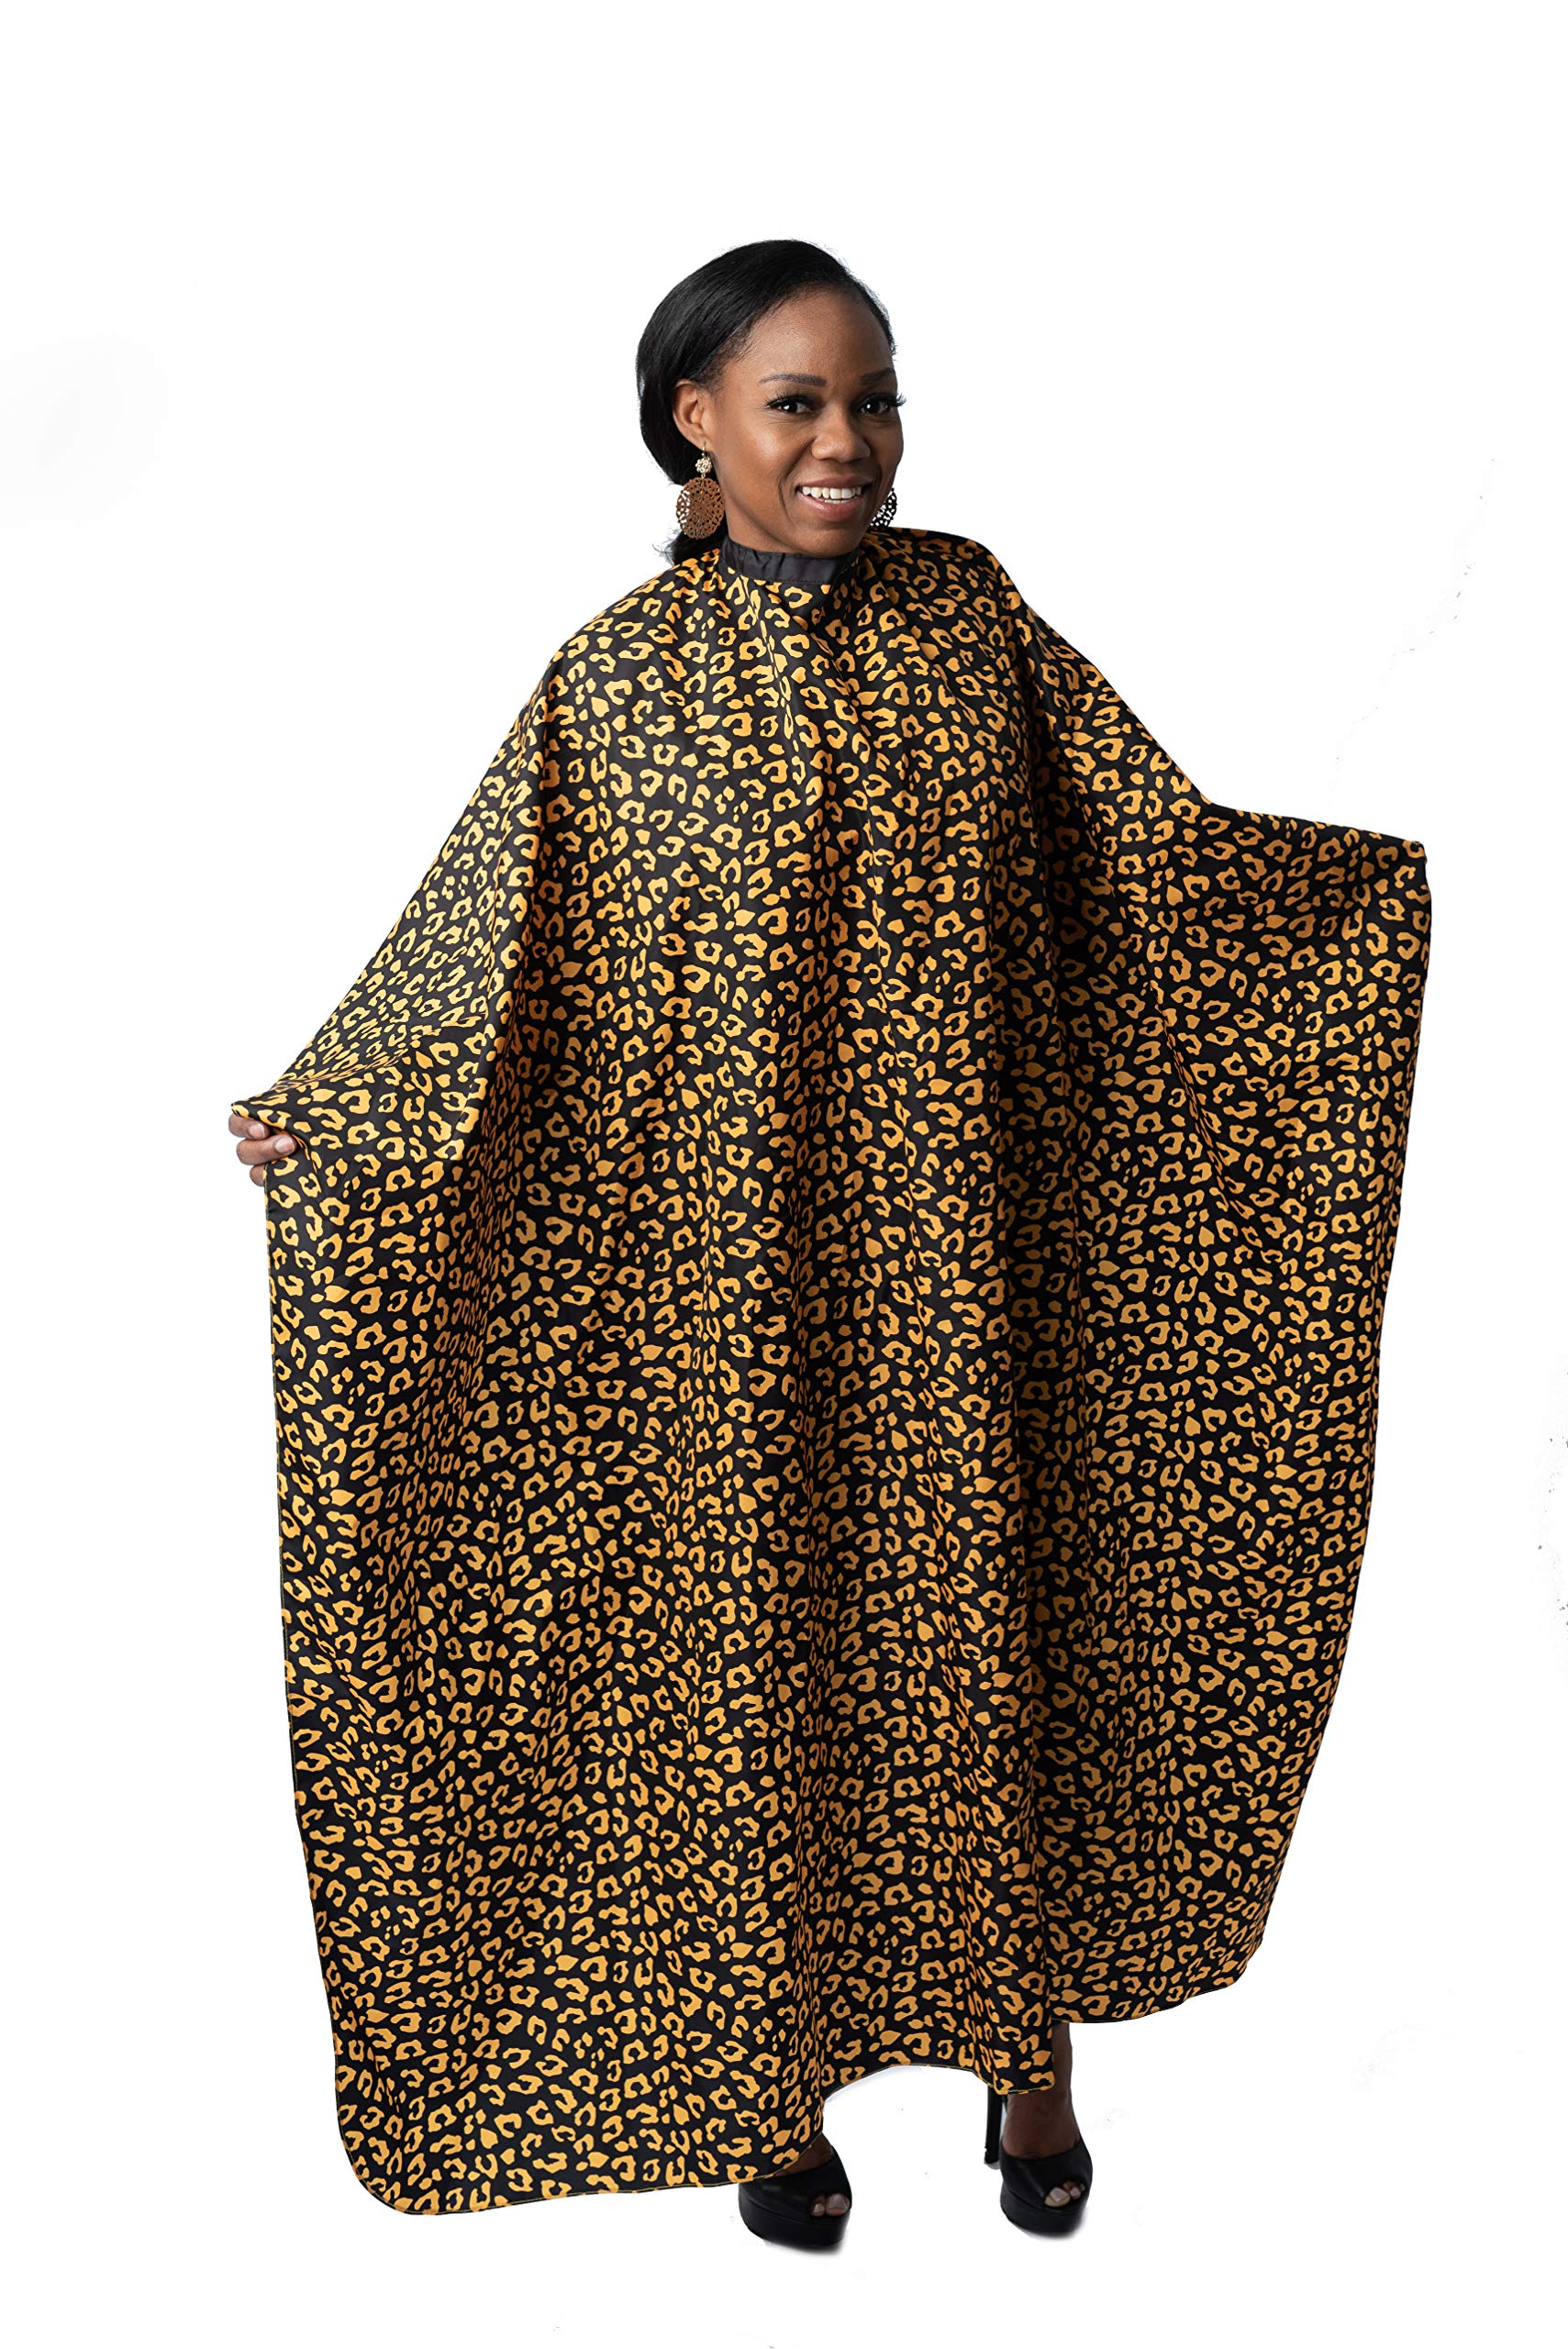 Capes By Sheena Large 66'' L x 53.5'' W Unique Design Salon Cape, Large Barber Supplies for Hair-Cutting Animal Print Capes (Yellow and Black) by Capes By Sheena